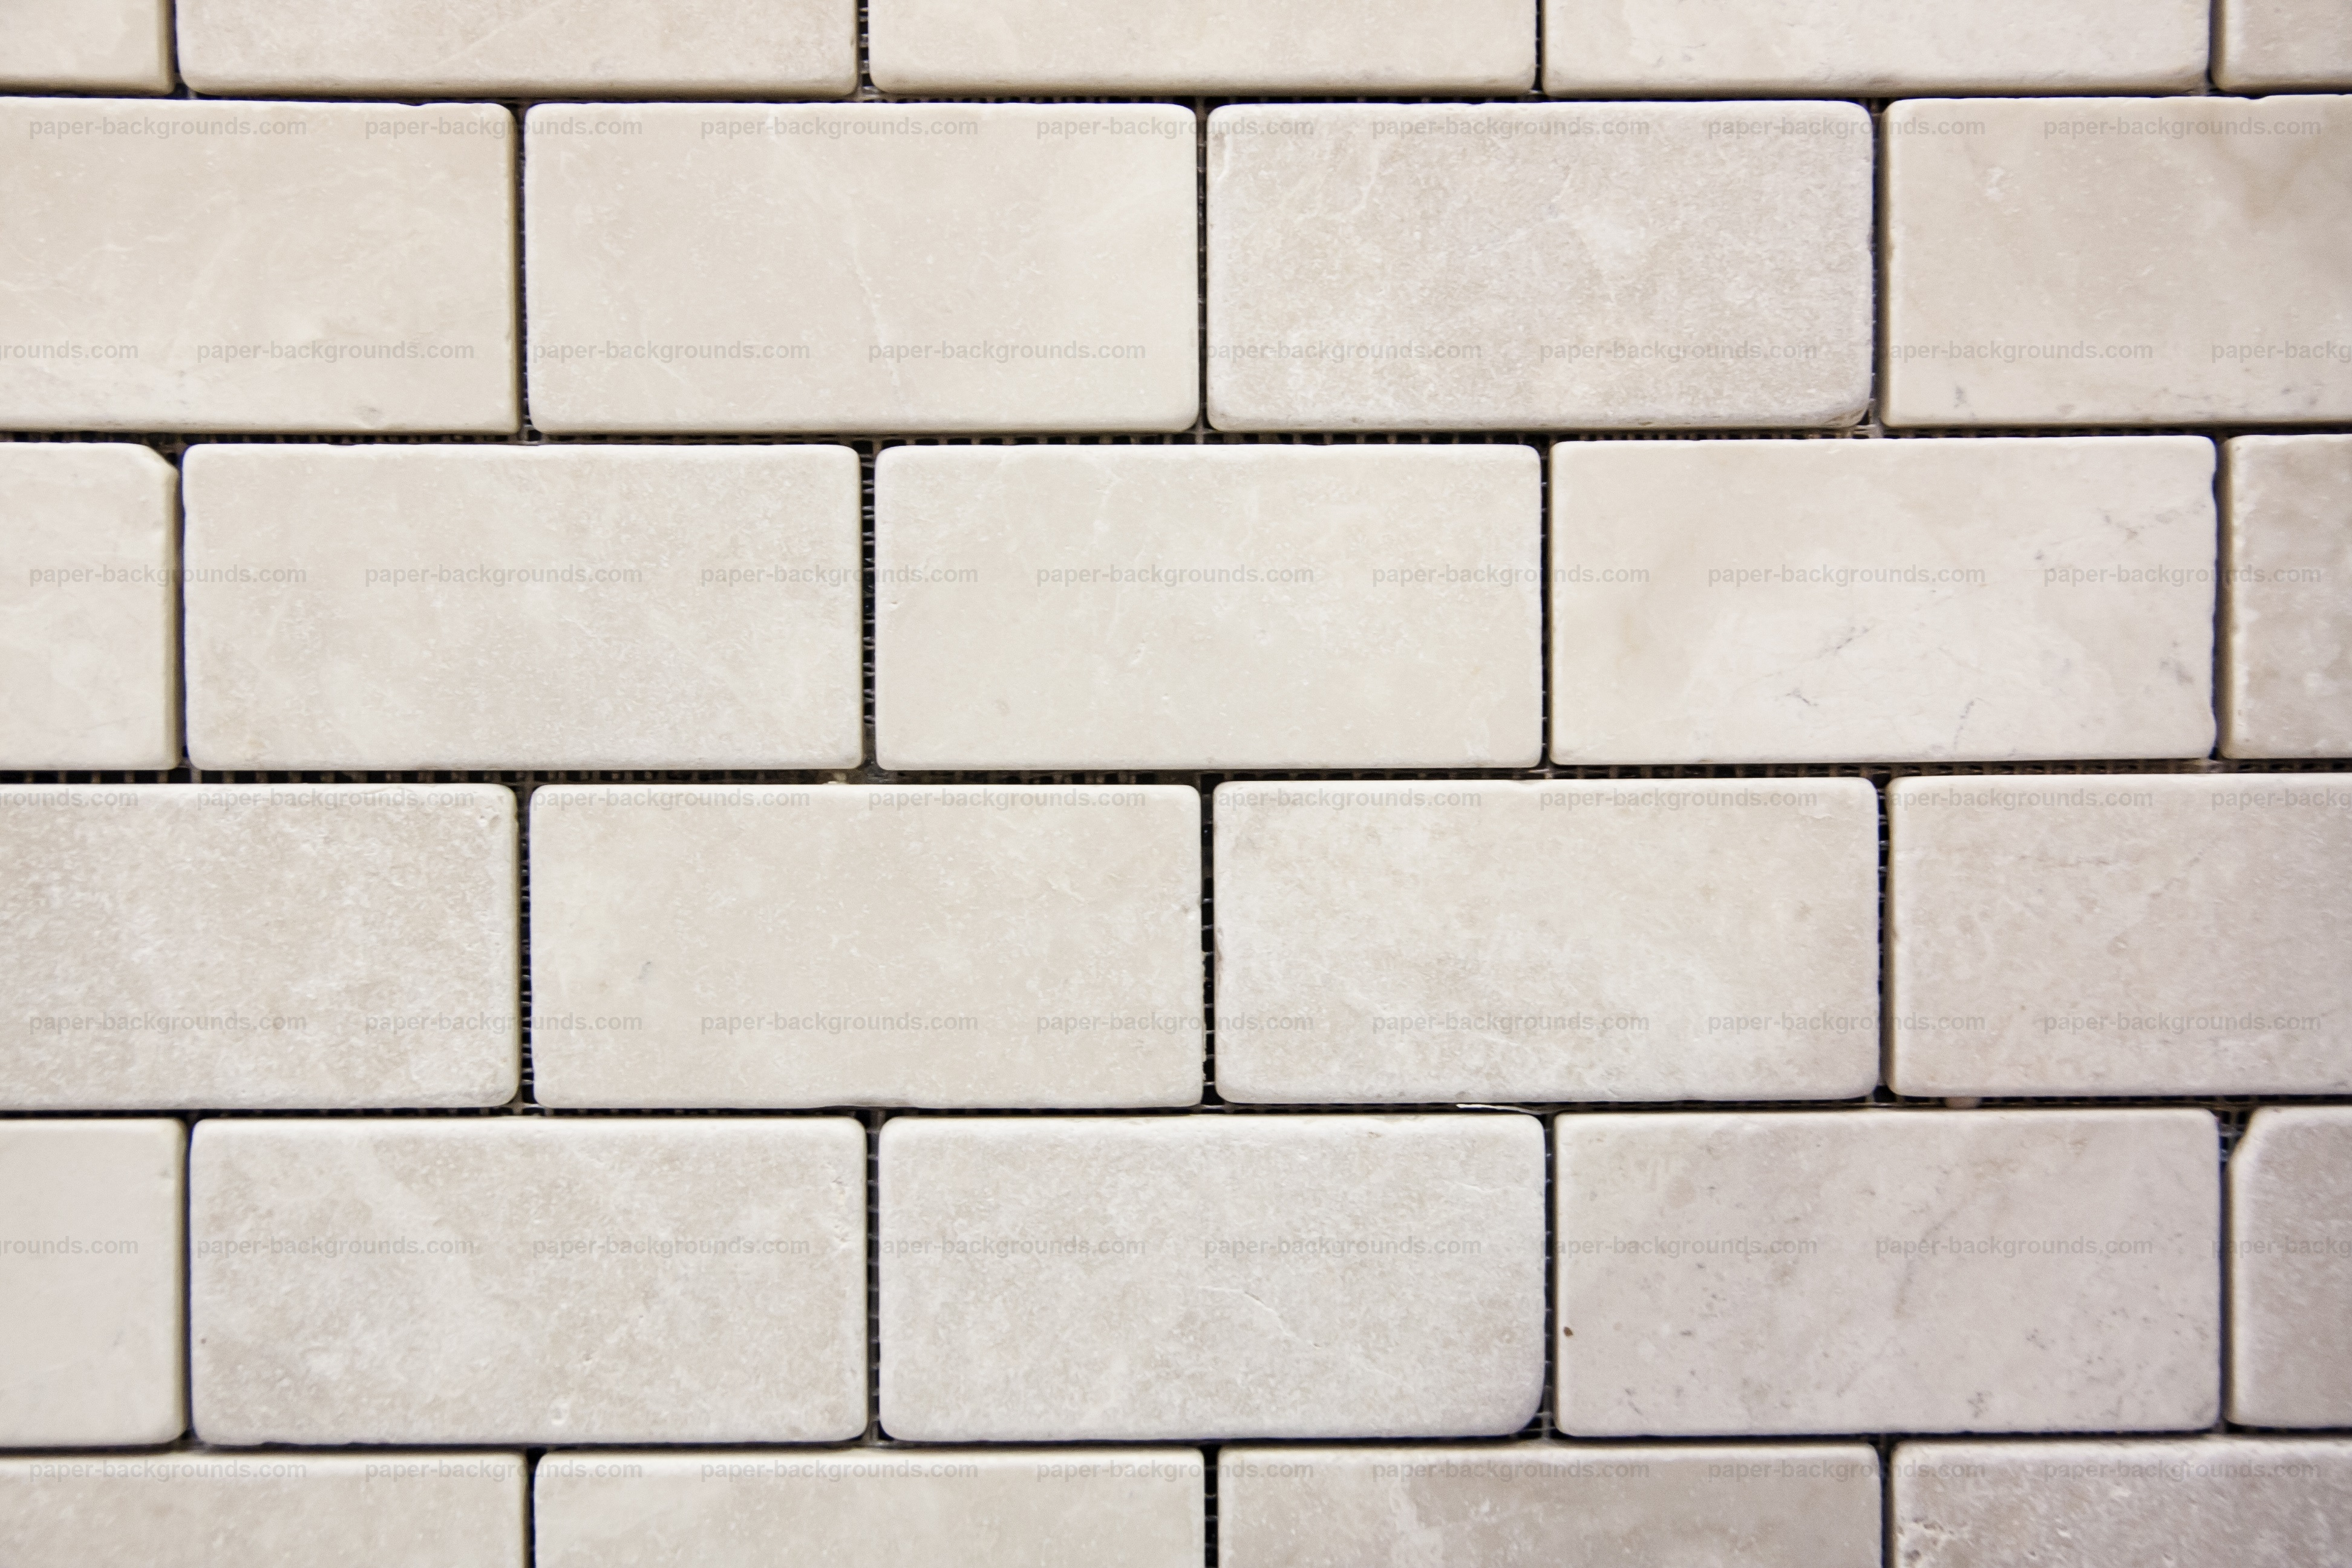 Paper Backgrounds White Marble Brick Wall Texture High Resolution